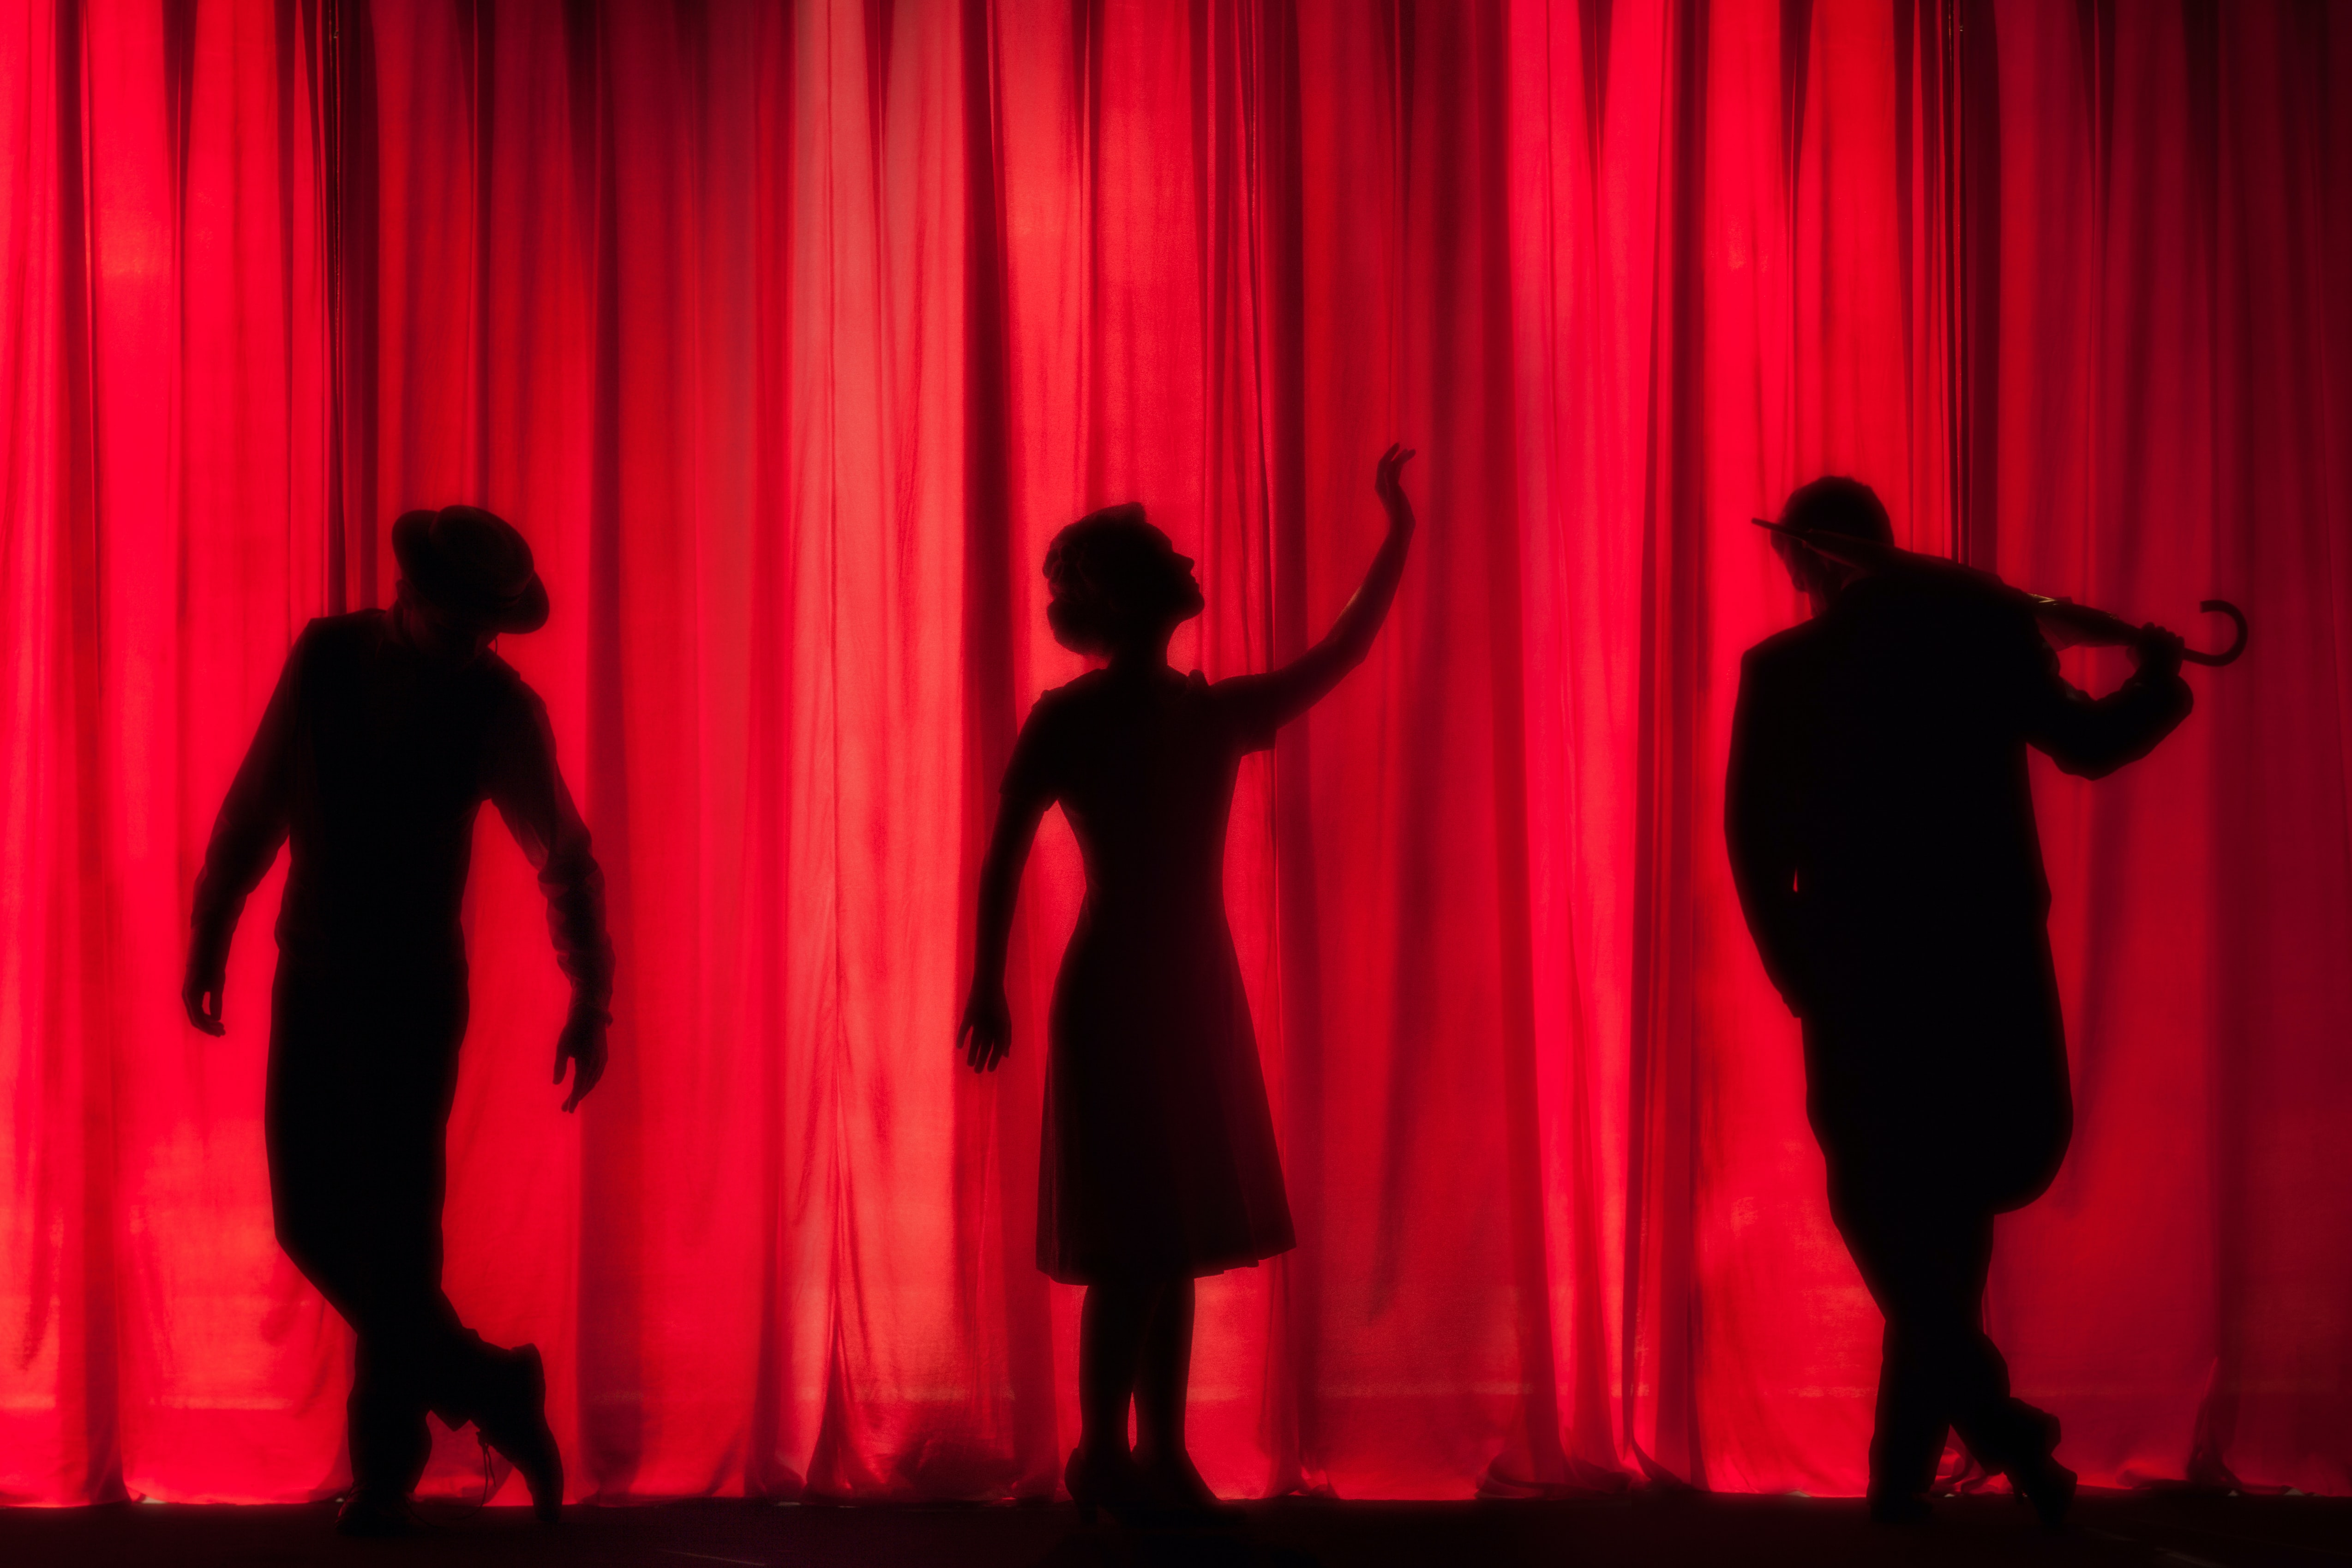 Silhouette of three stage actors behind a red curtain